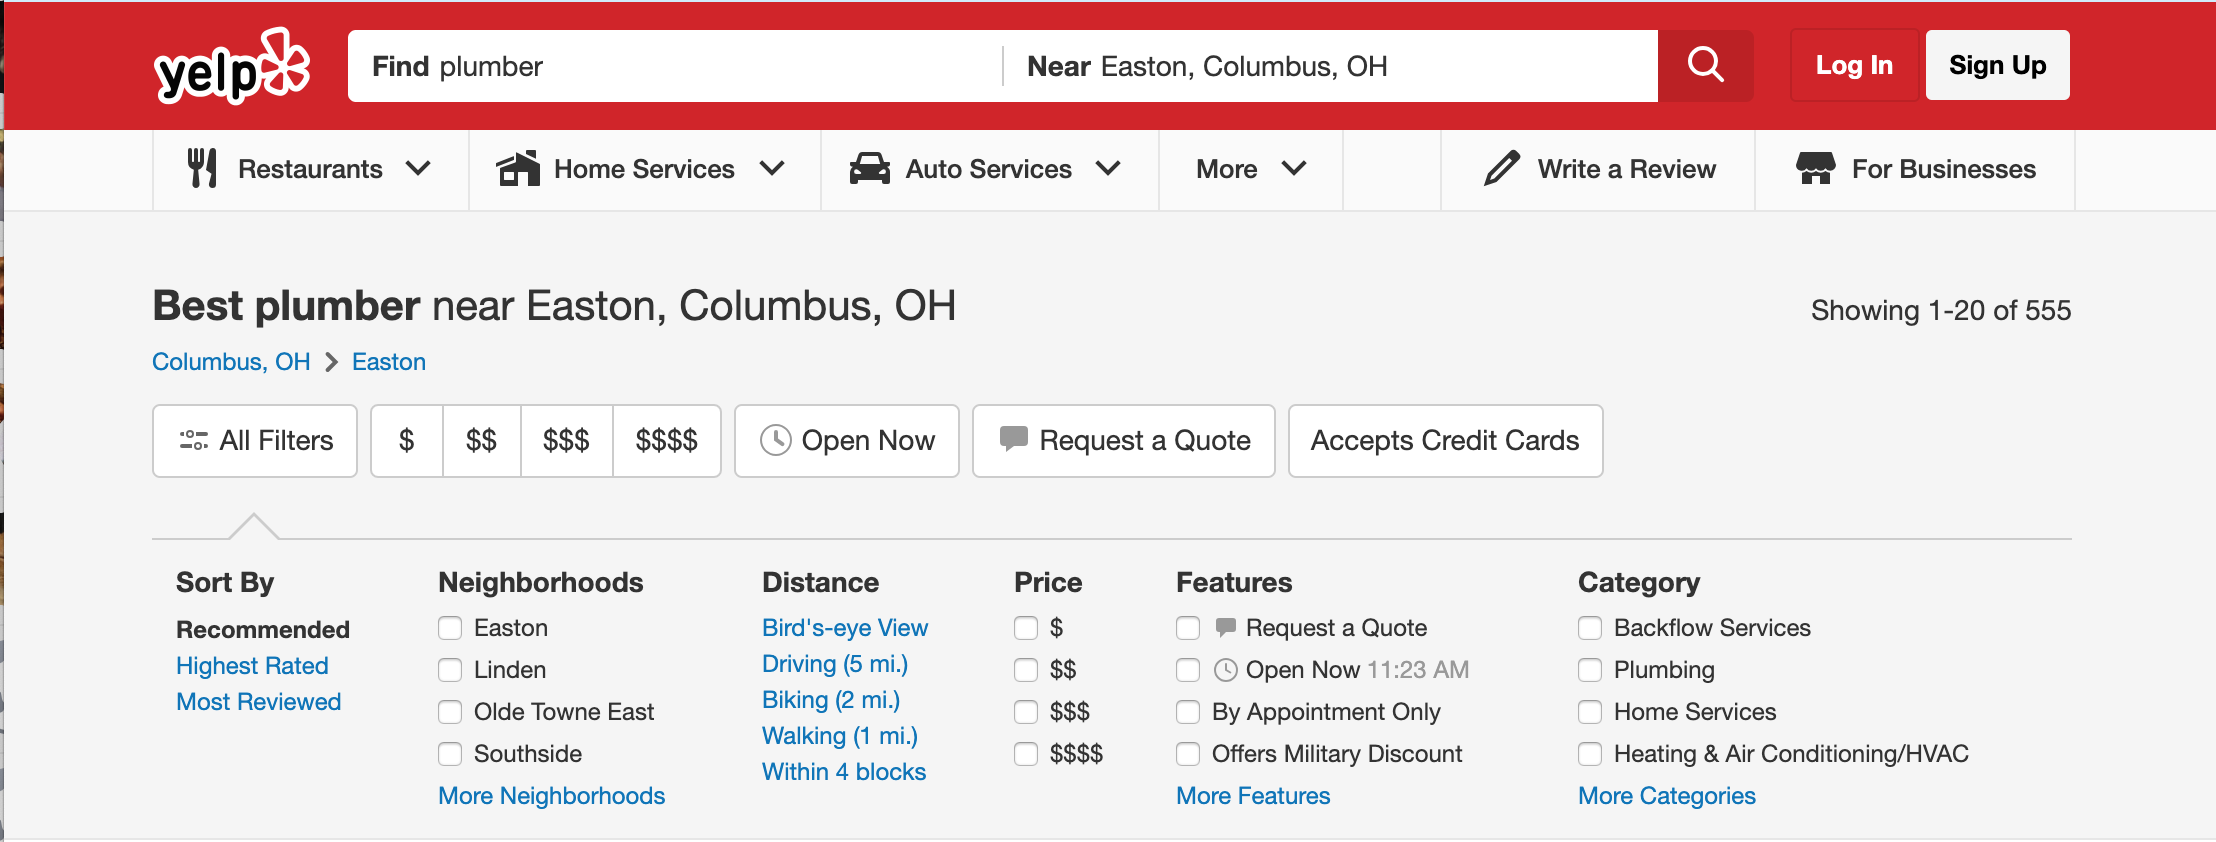 get found by new customers yelp